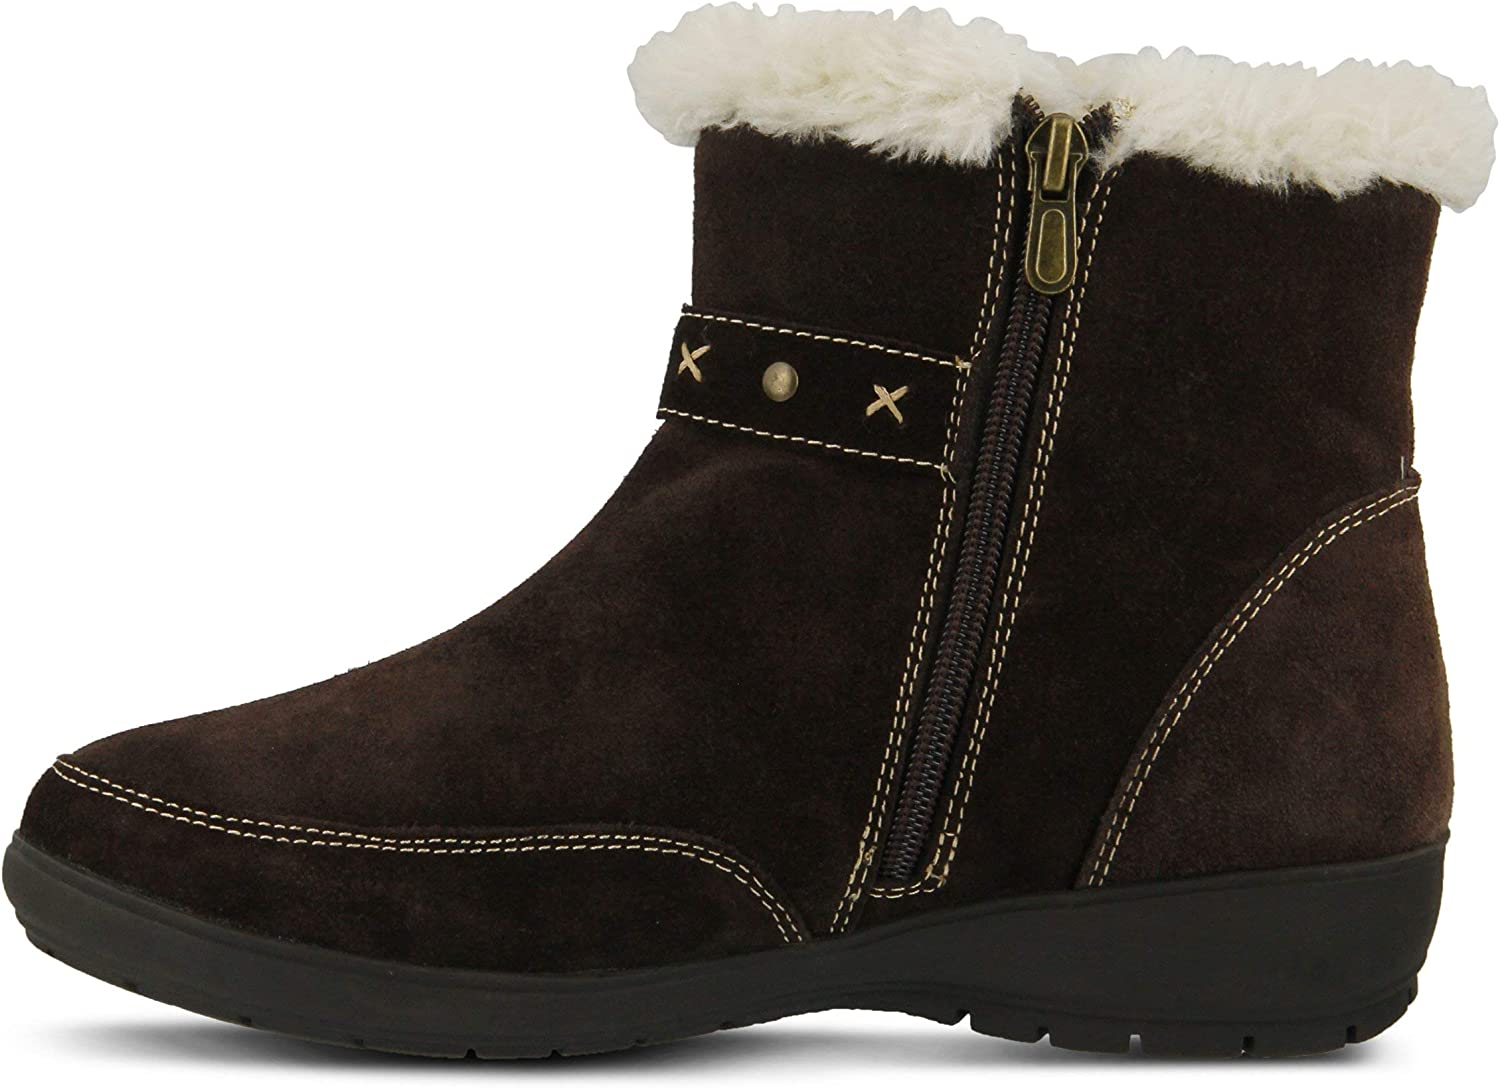 Spring Step Womens Reeve Winter Boot